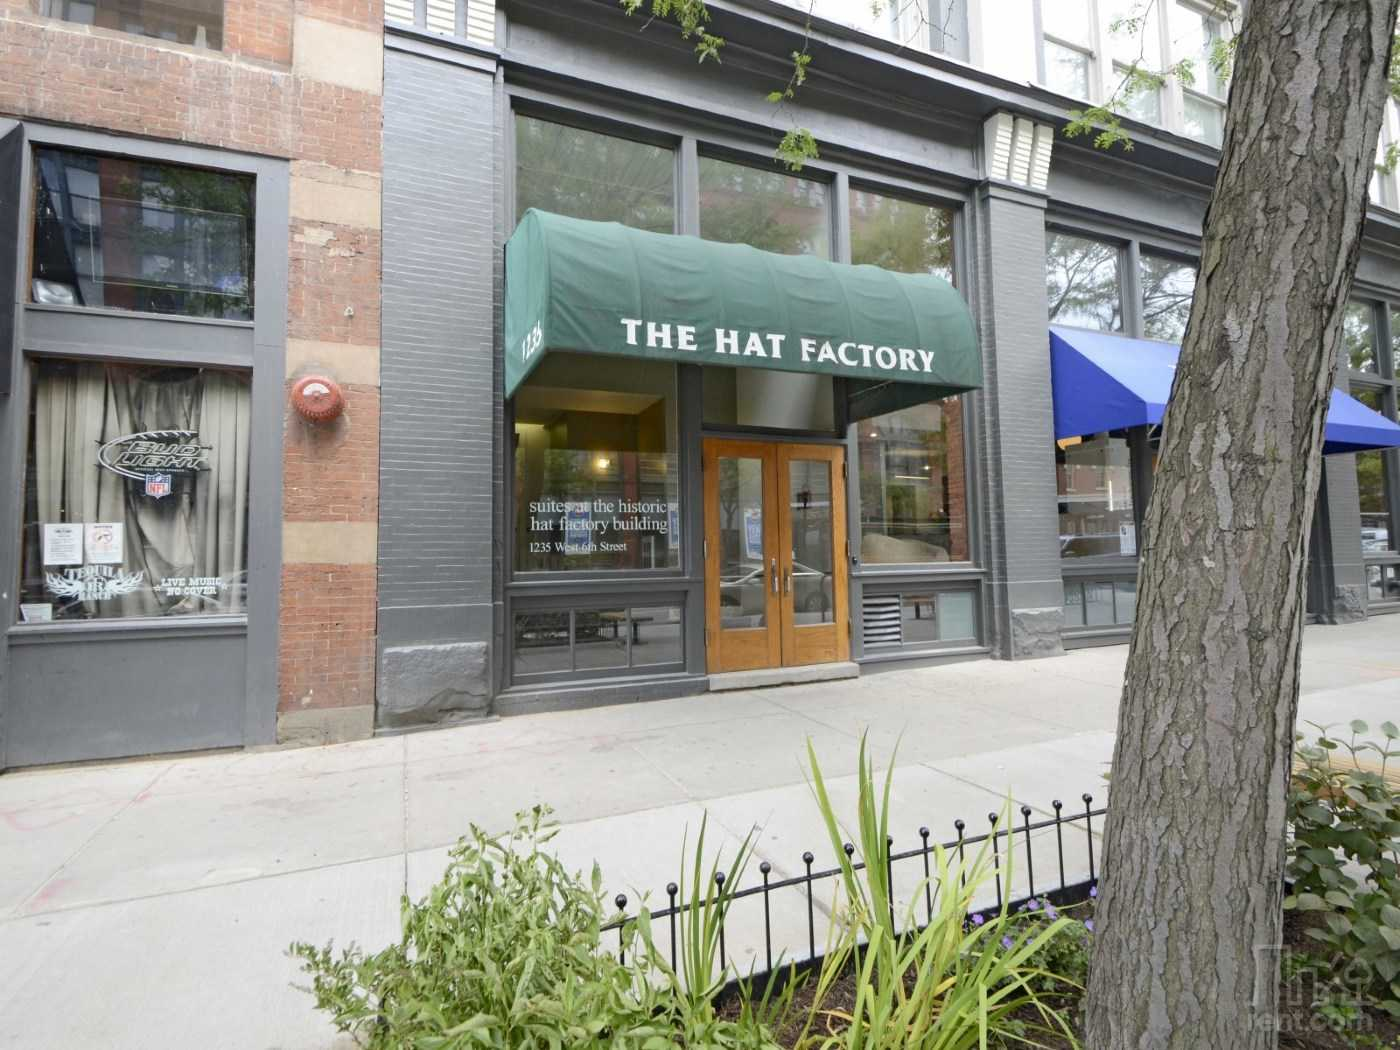 The Hat Factory,1235 W. 6th Street